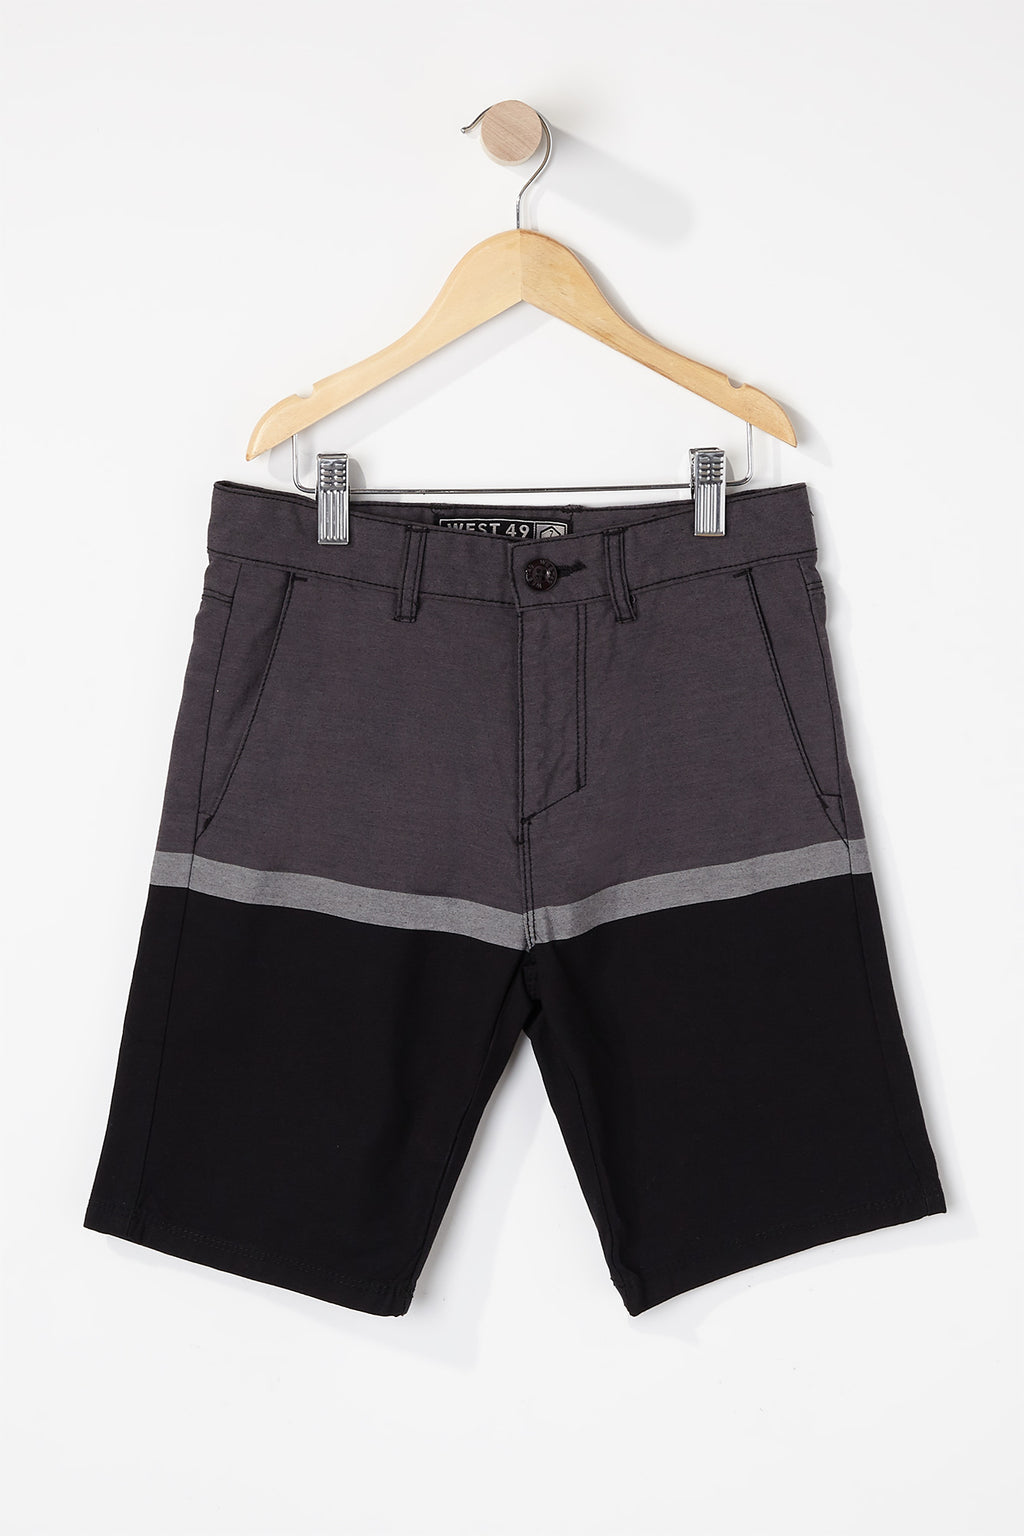 West49 Boys Color Block Shorts